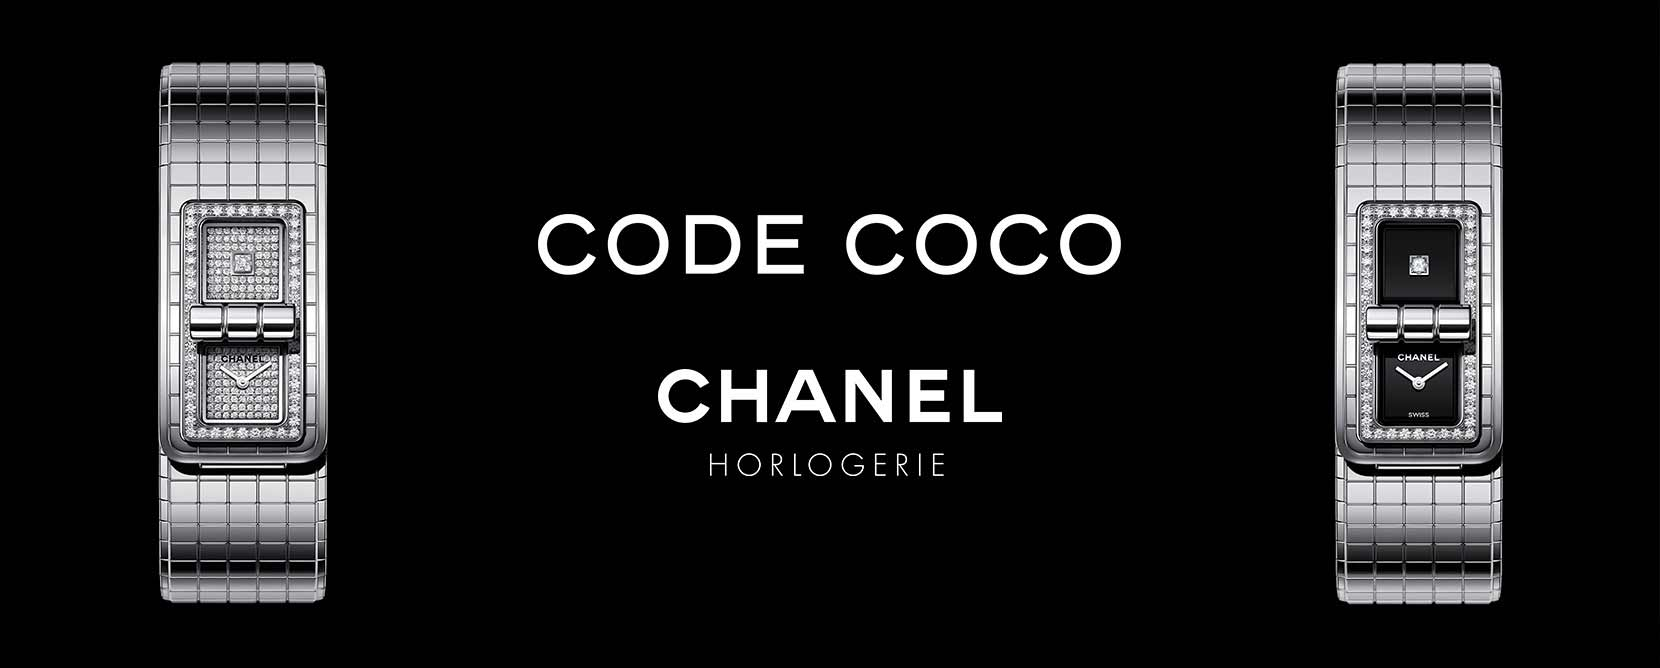 CHANEL CODE COCO The exclusive watch has landed Discover now